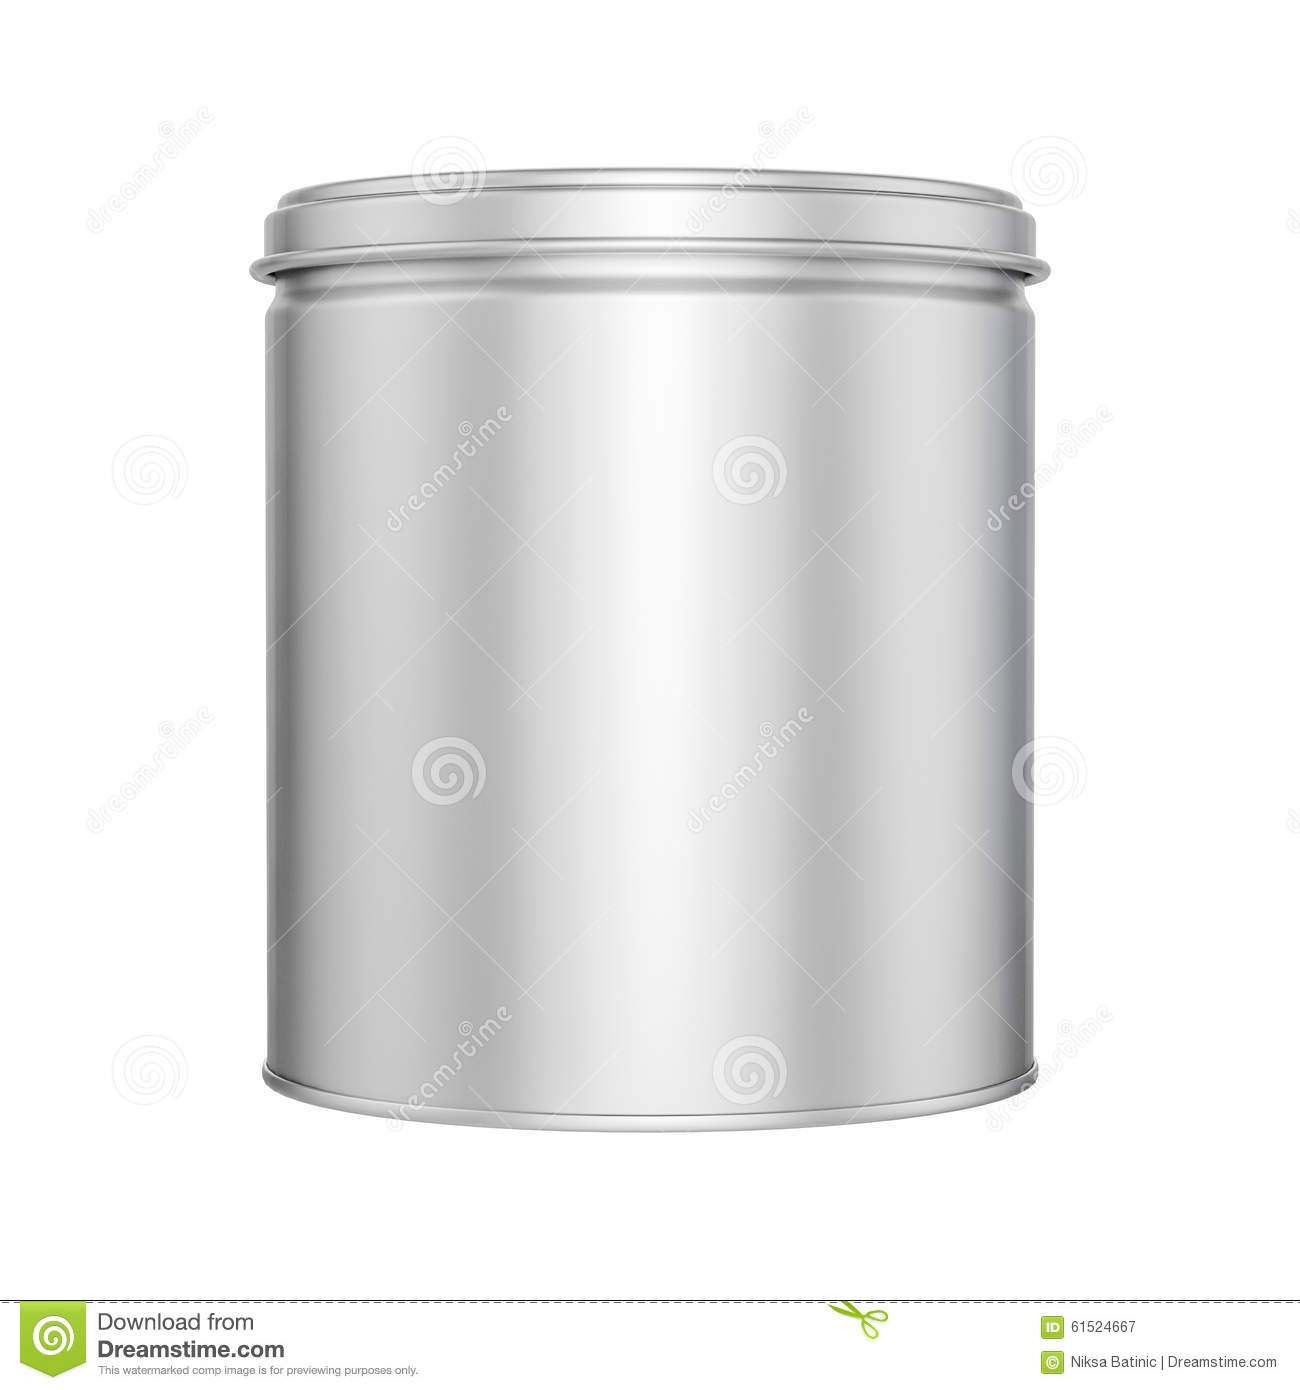 Tin Can With Metal Cap - Mock Up Stock Illustration - Illustration ... for tin can clipart black and white  55nar